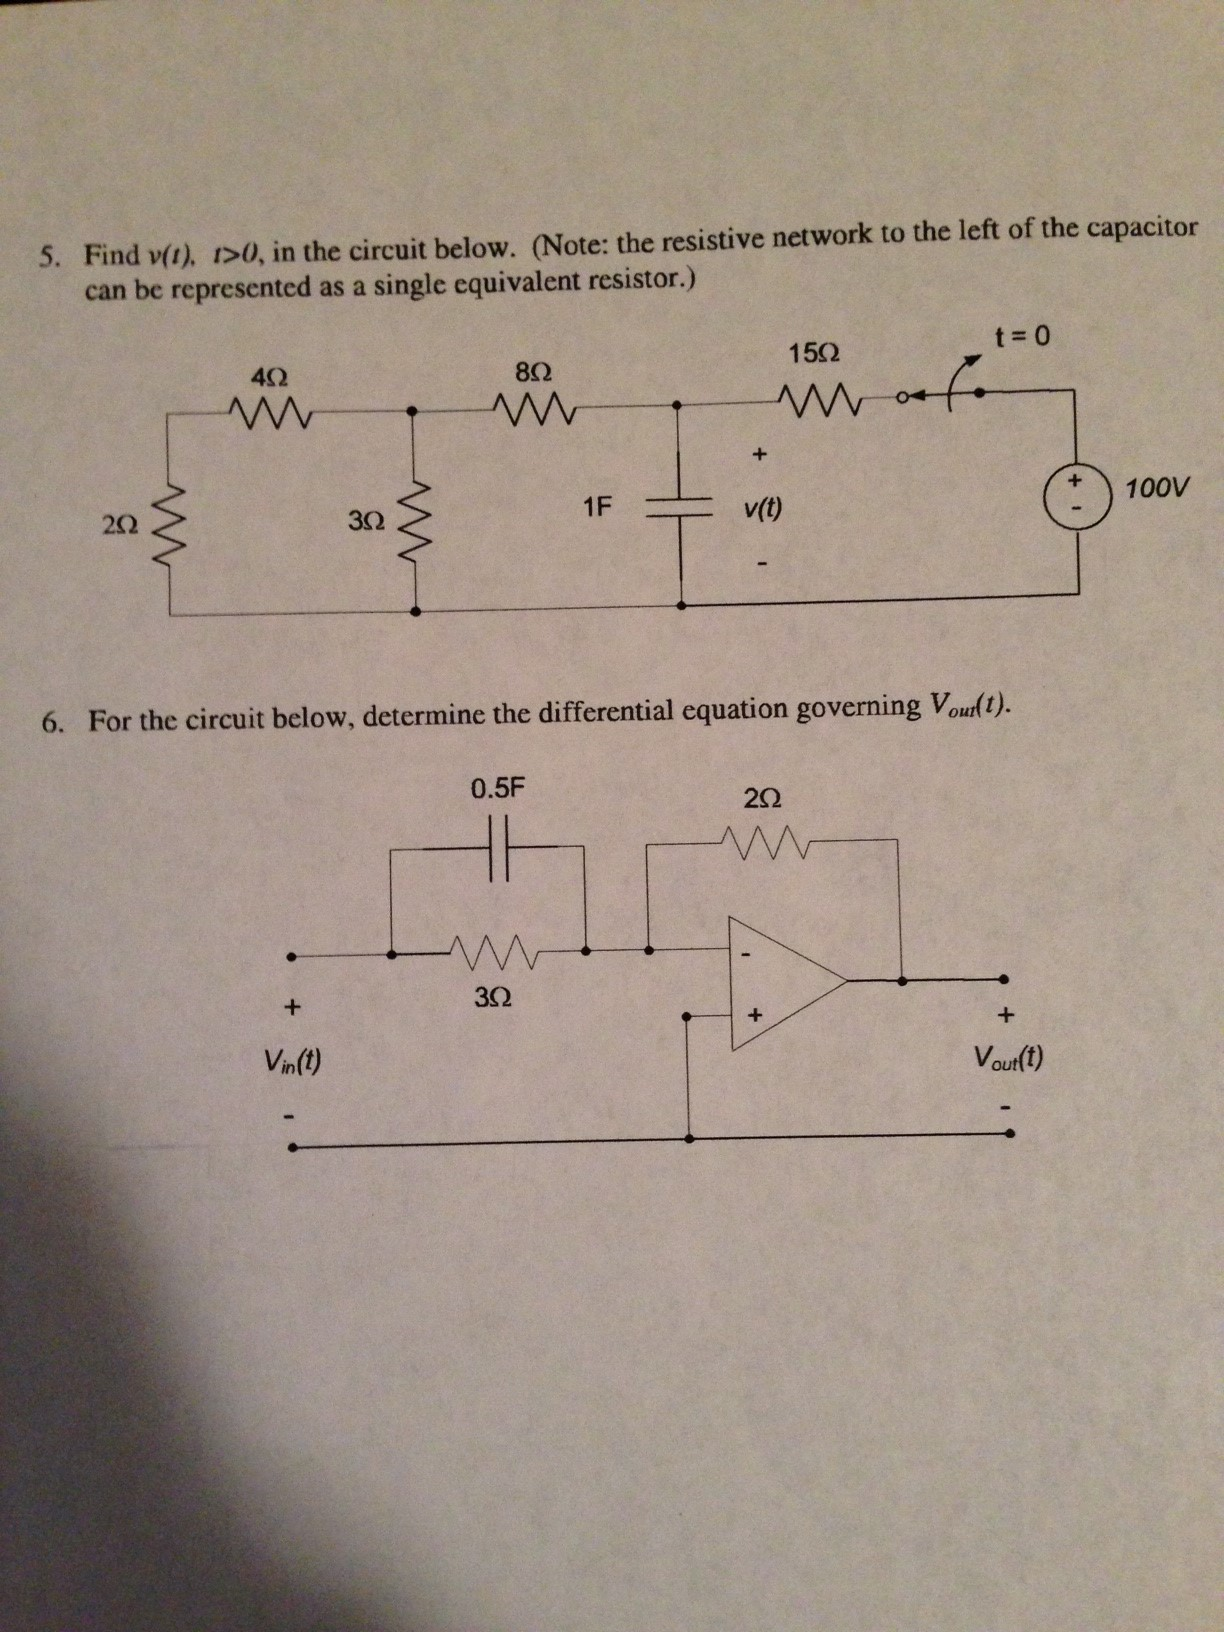 Find v(t), r > 0, in the circuit below. (Note: the